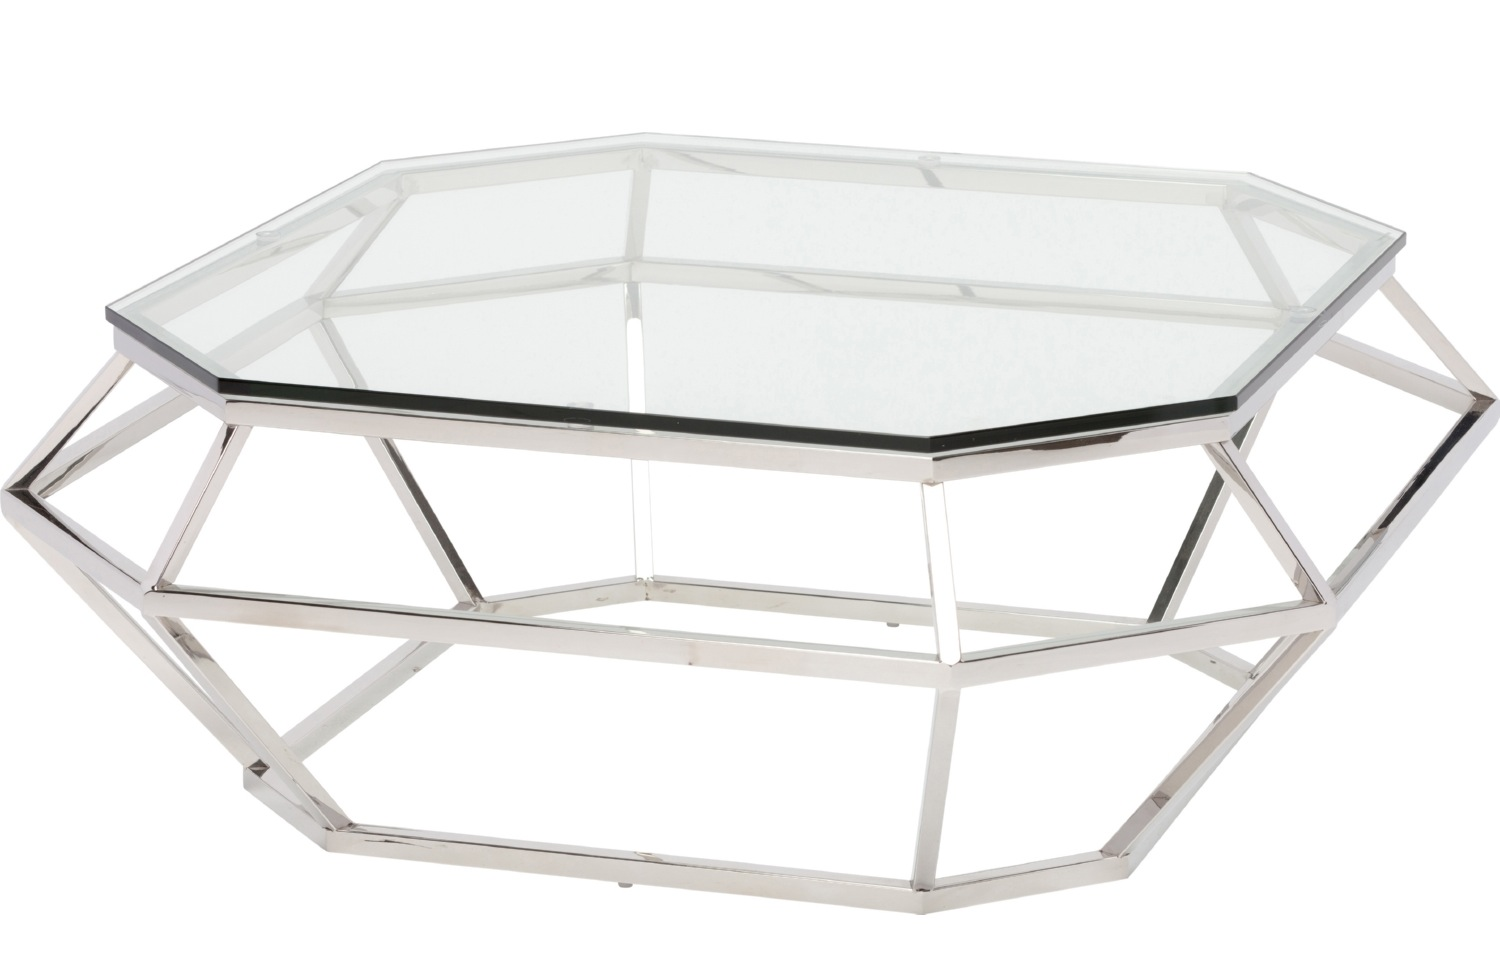 diamond-square-coffee-table-by-nuevo.jpg